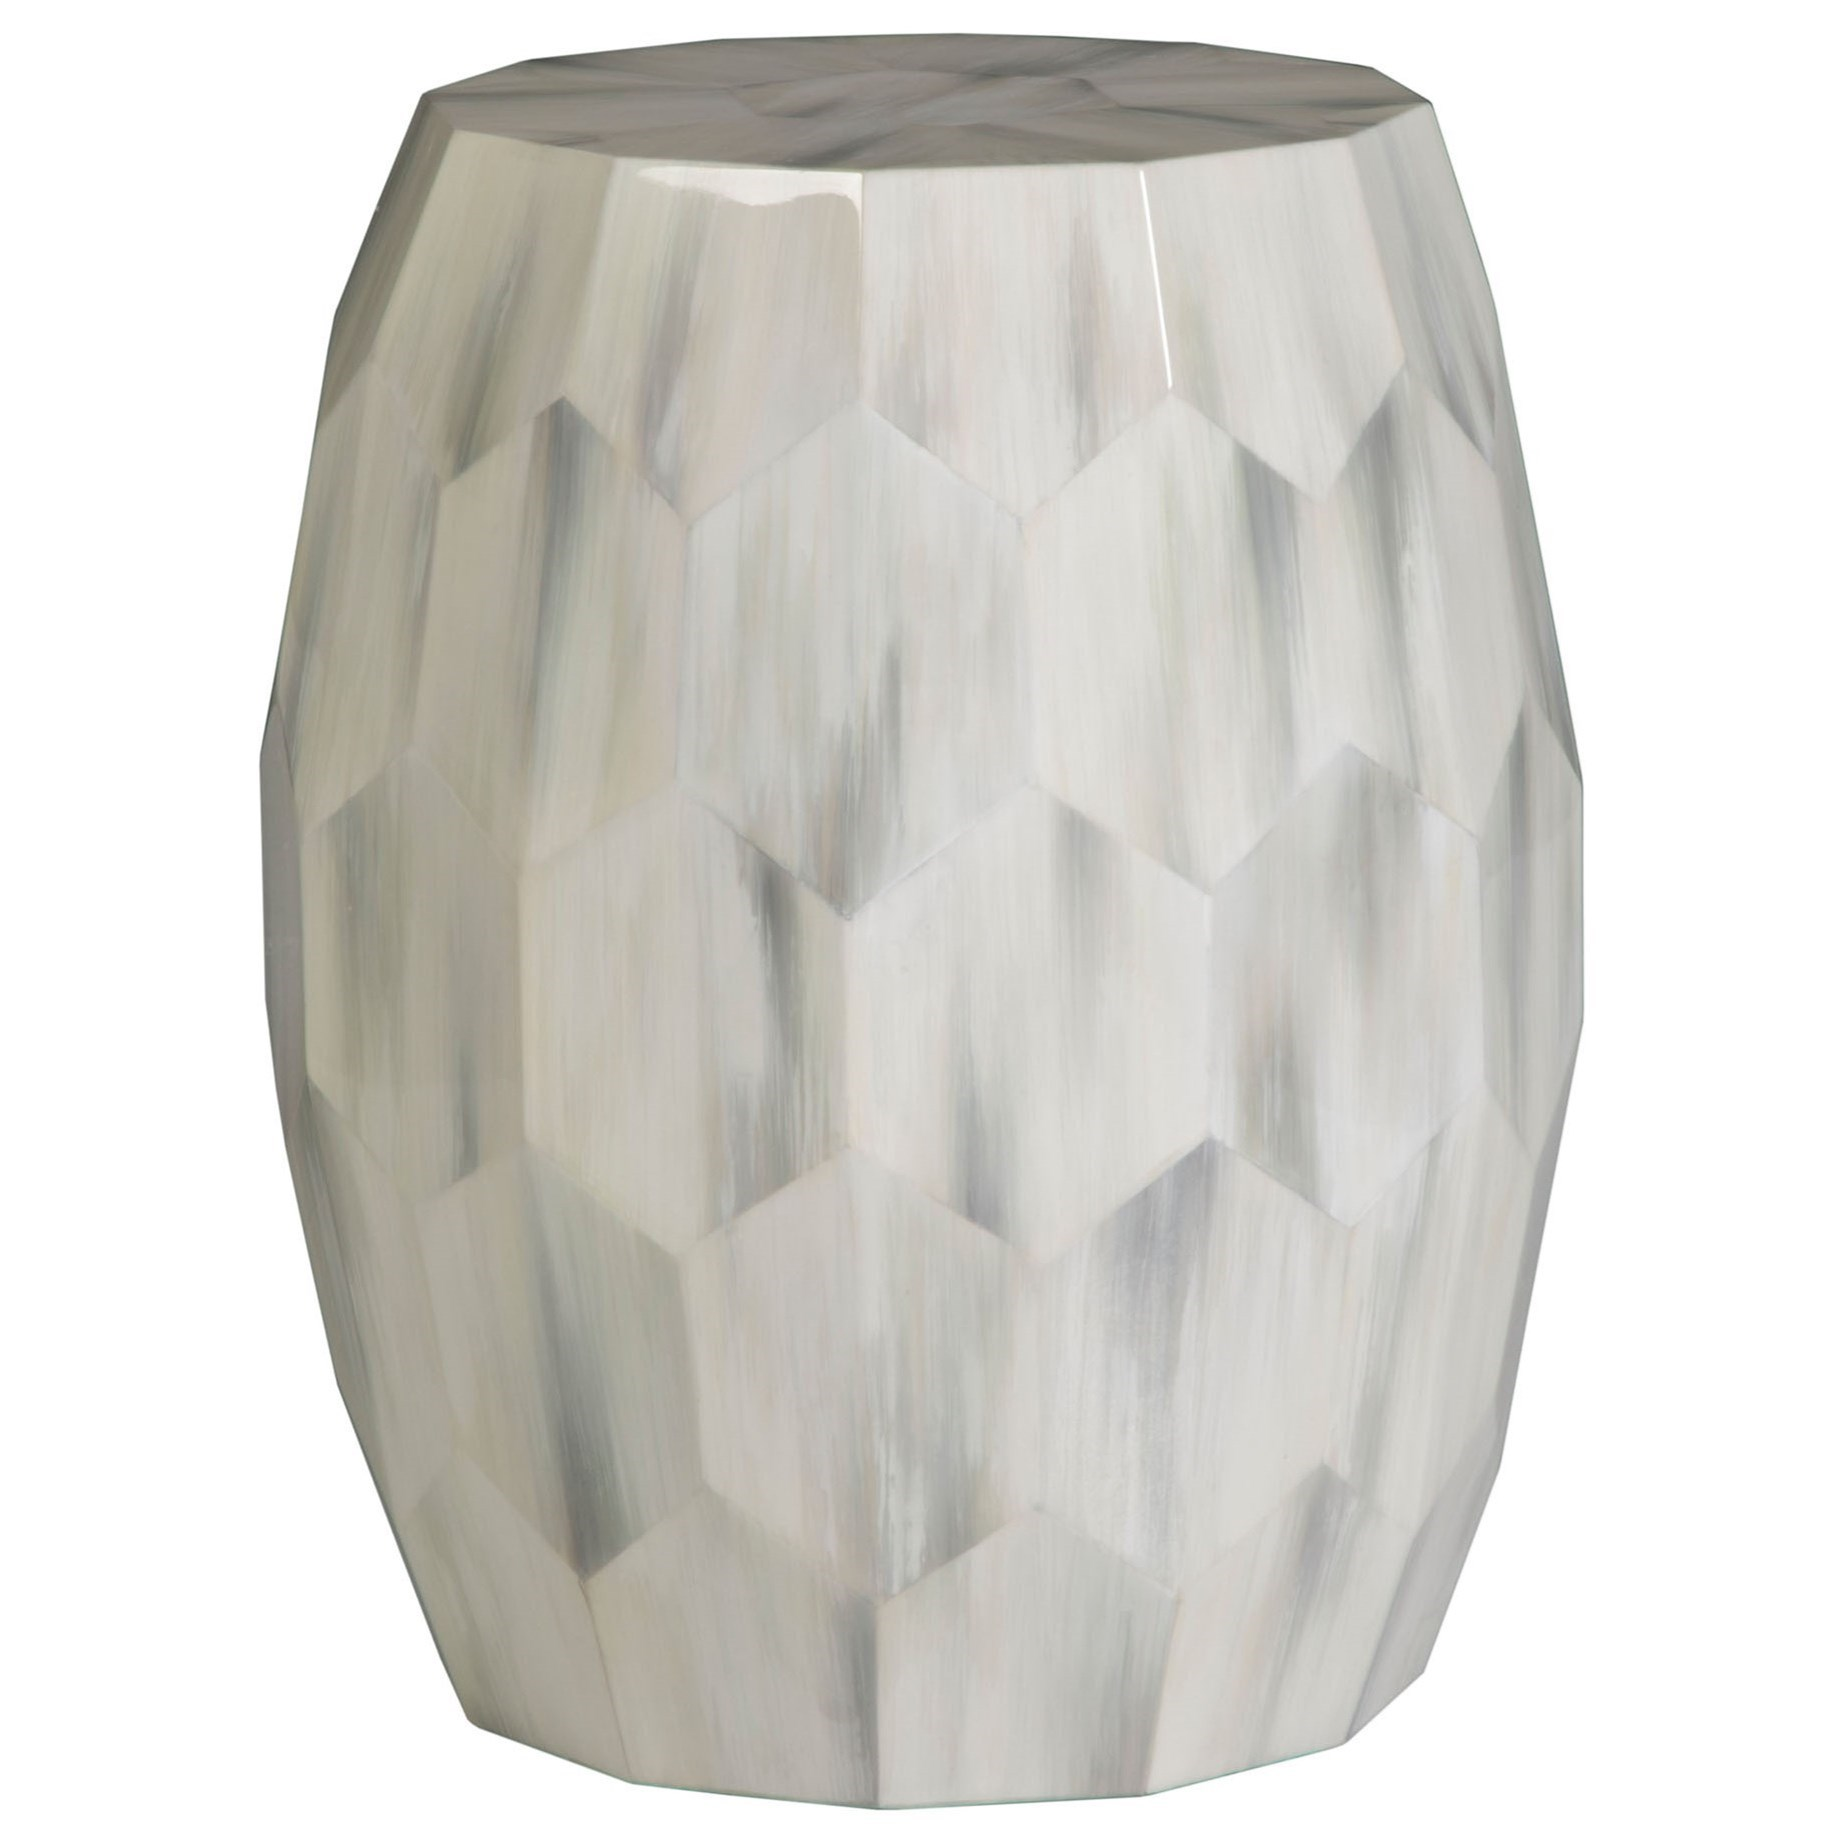 Bello Faceted Drum Table by Artistica at Baer's Furniture